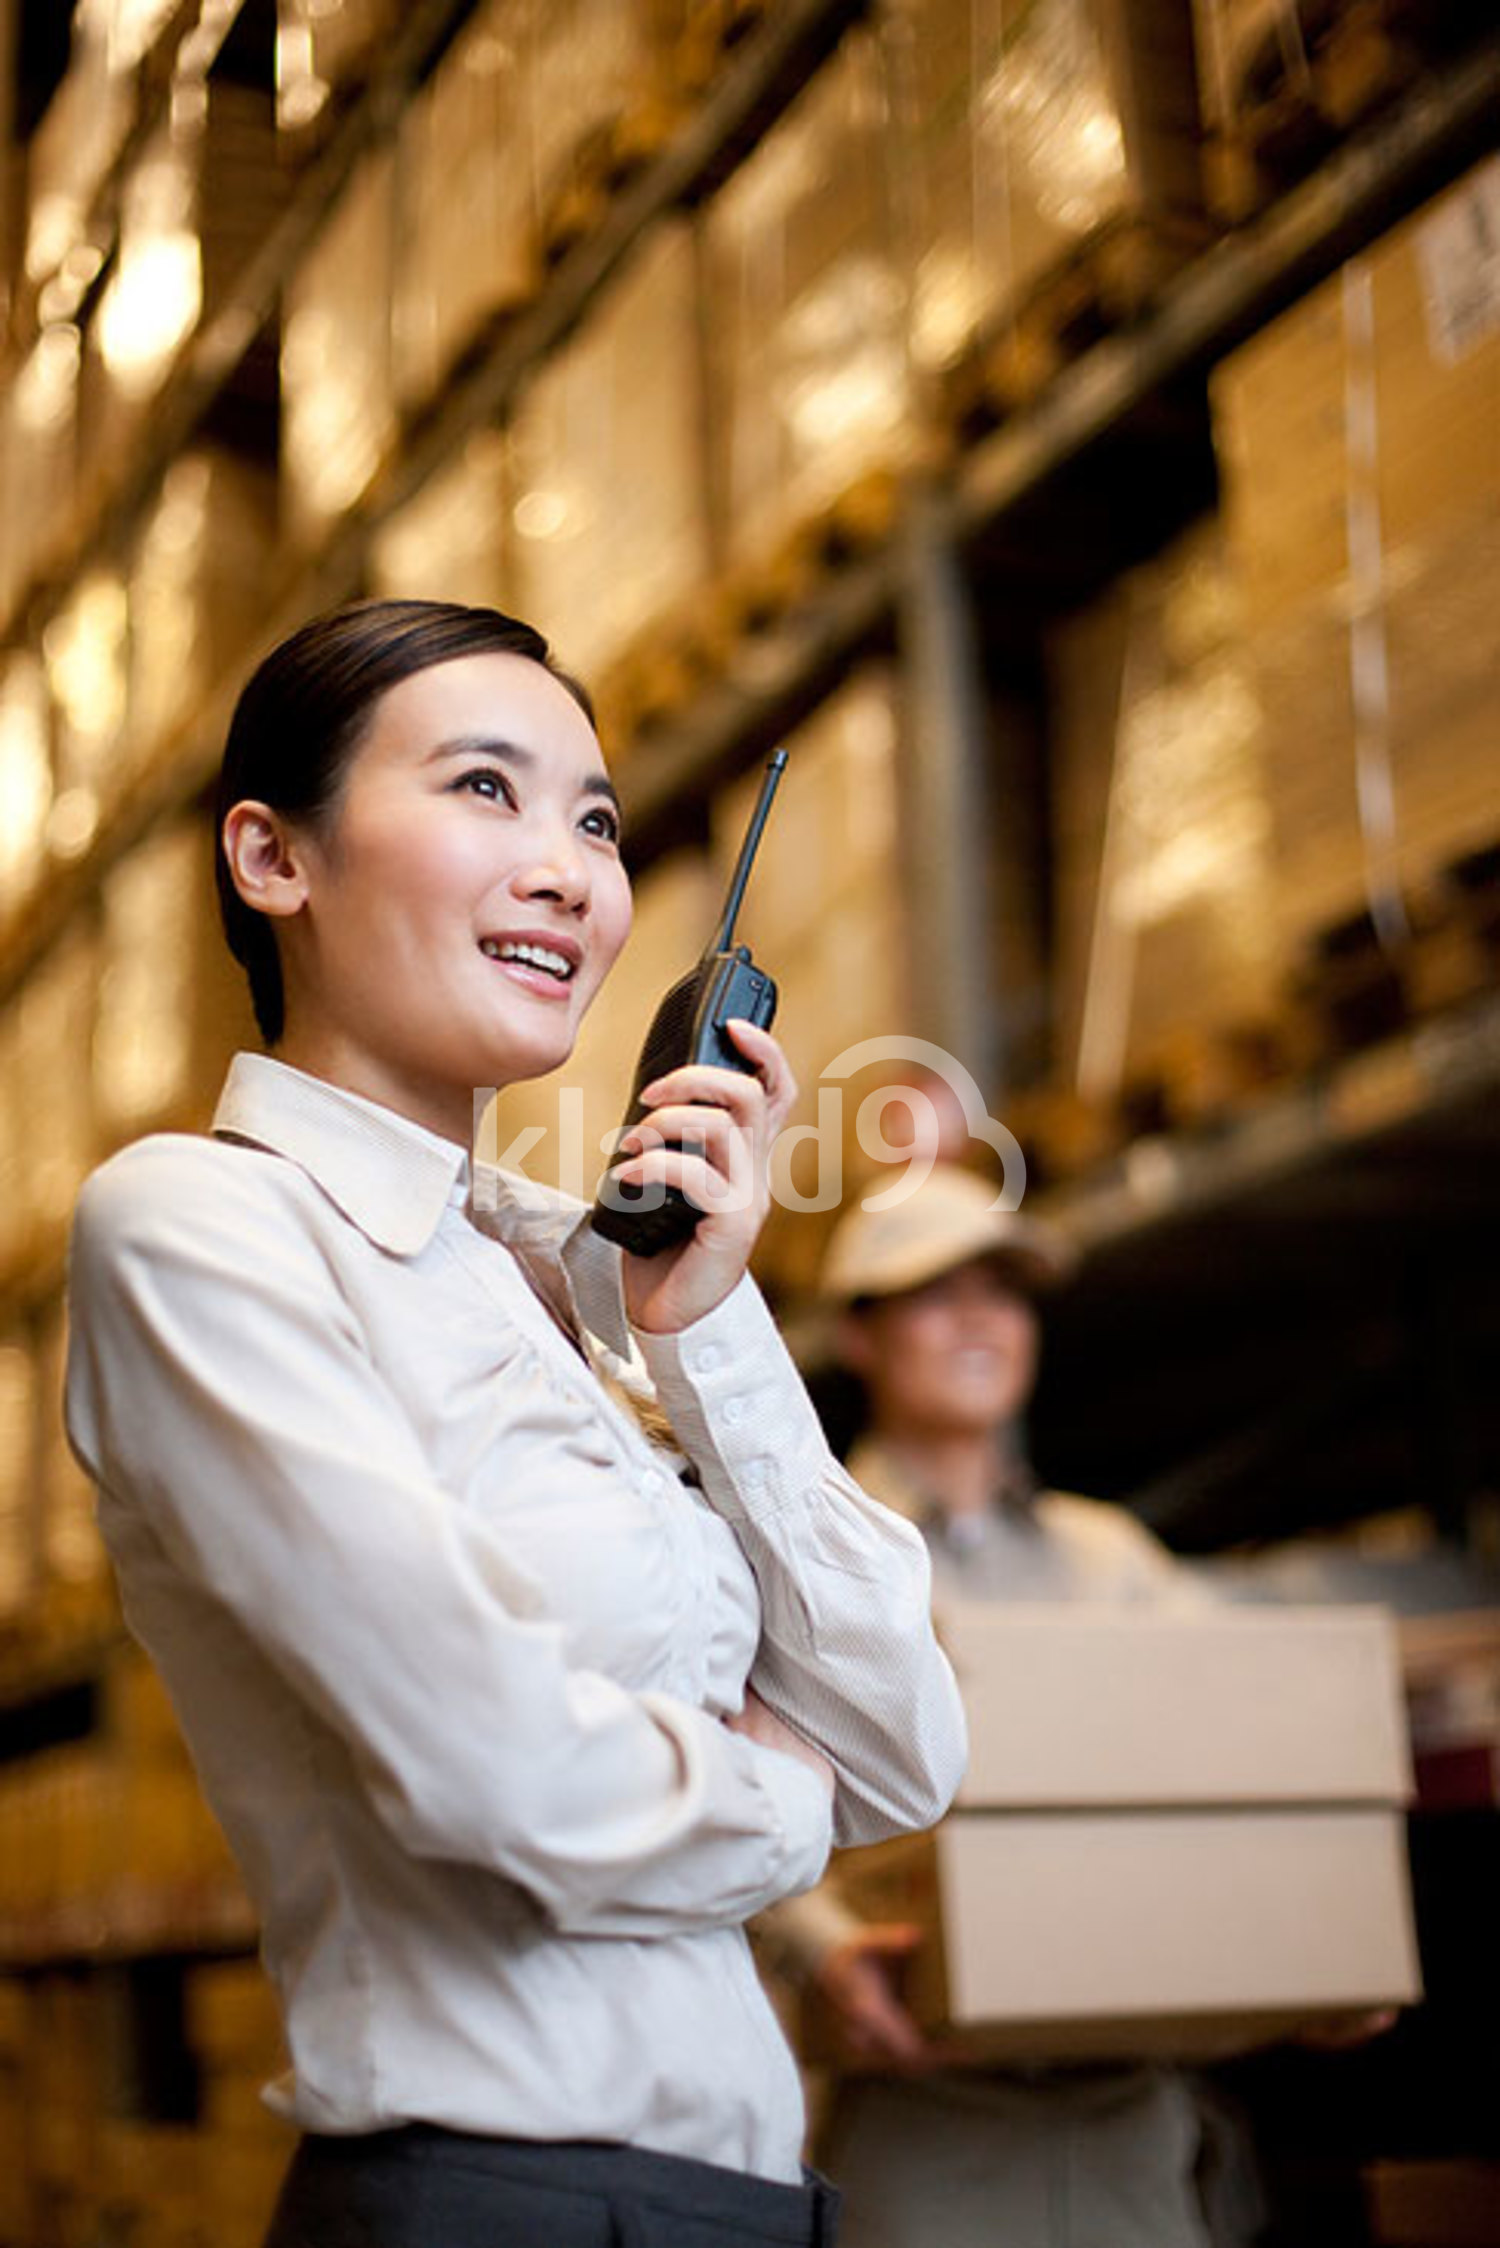 Chinese businesswoman in a warehouse with a walkie-talkie